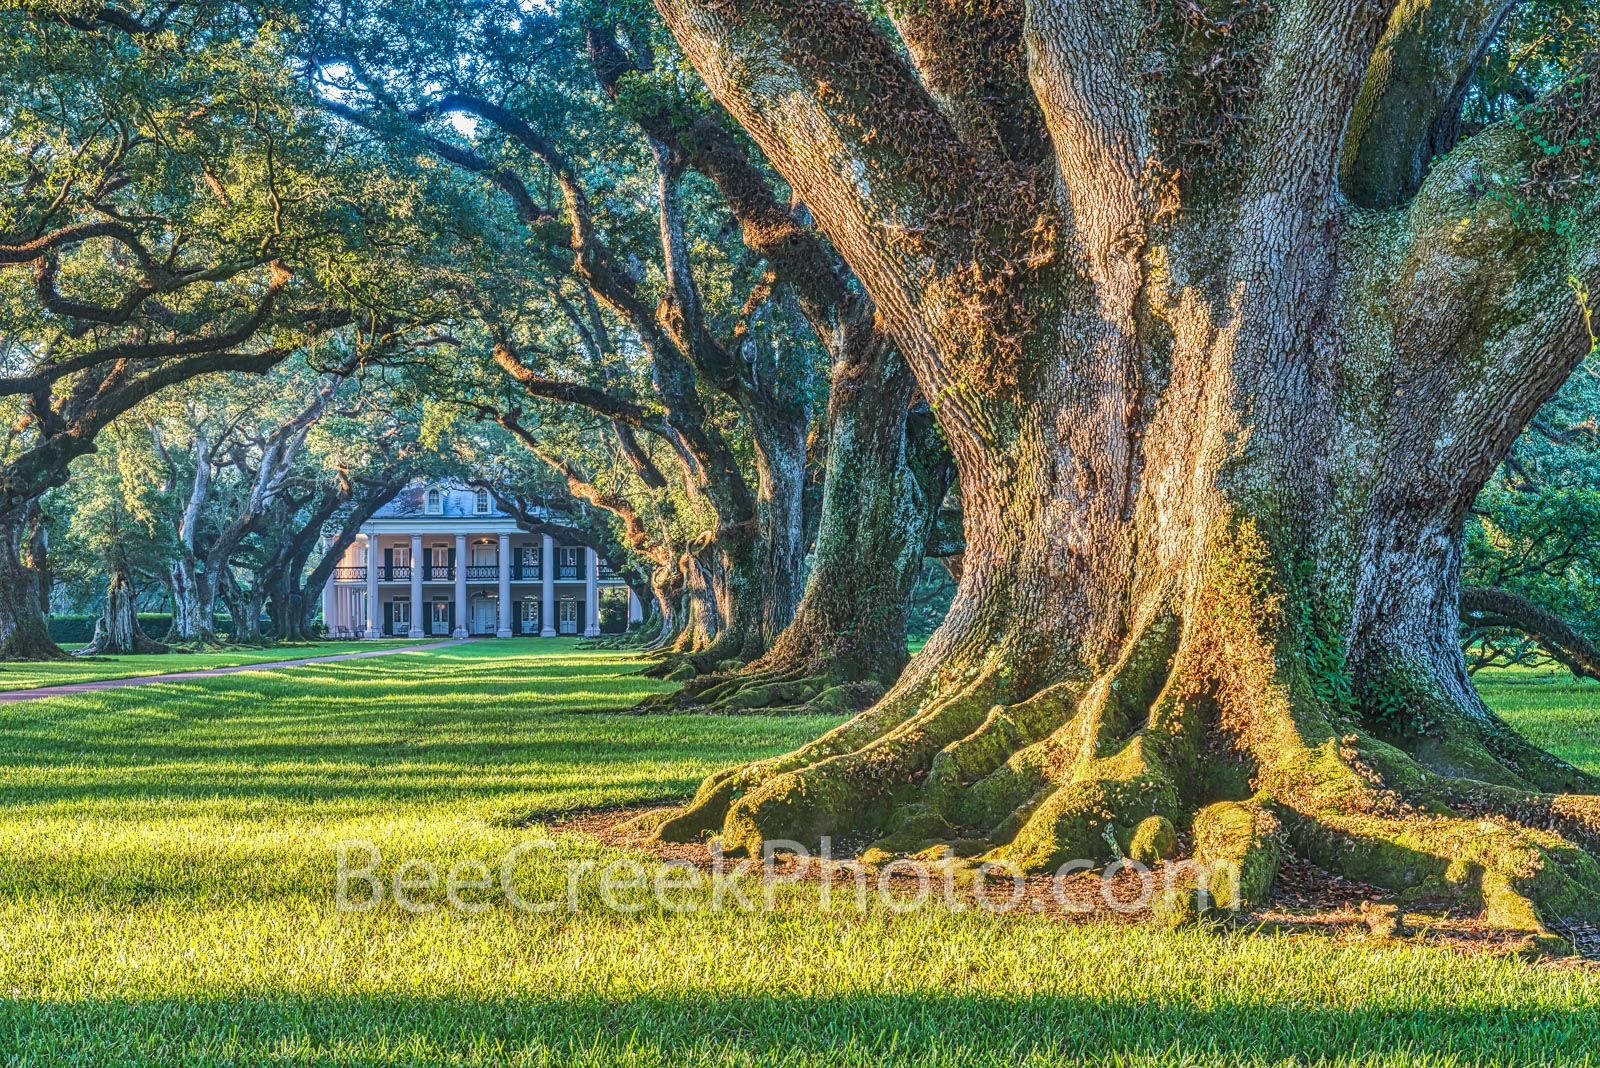 Lousiana, Oak Alley, Sunrise, big house, branches, mansion, oak trees, plantation, roots, sidewalk, slaves, sugar cane, photo